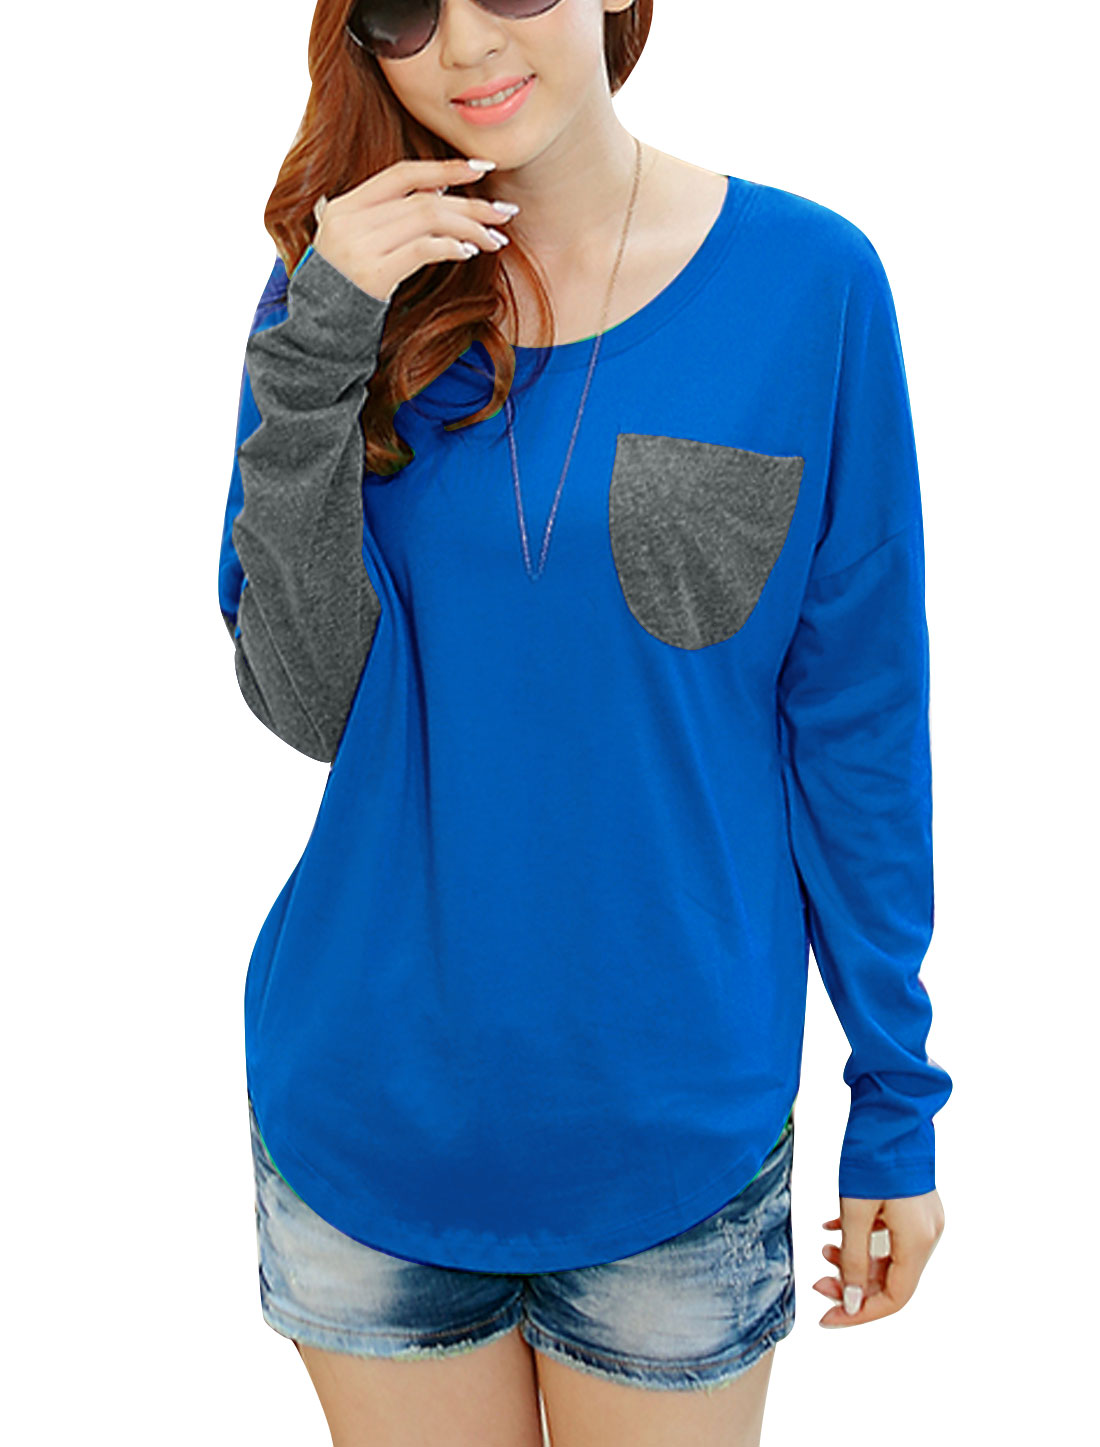 Women Long Sleeve Pullover Casual Tee Shirt Royal Blue Gray S